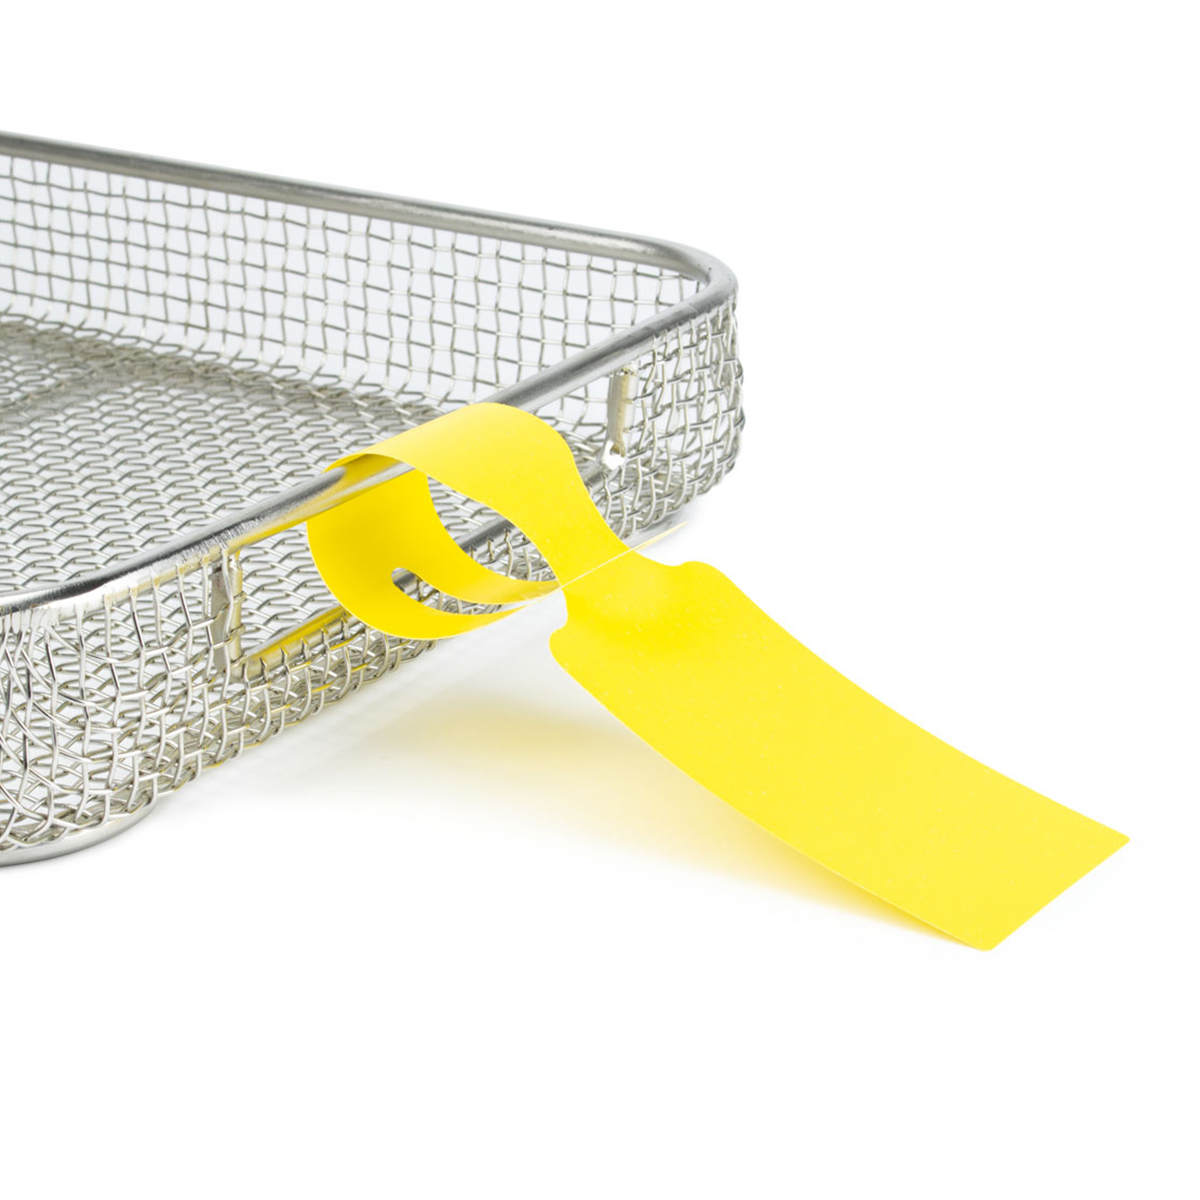 Sieve Tray Tags Image